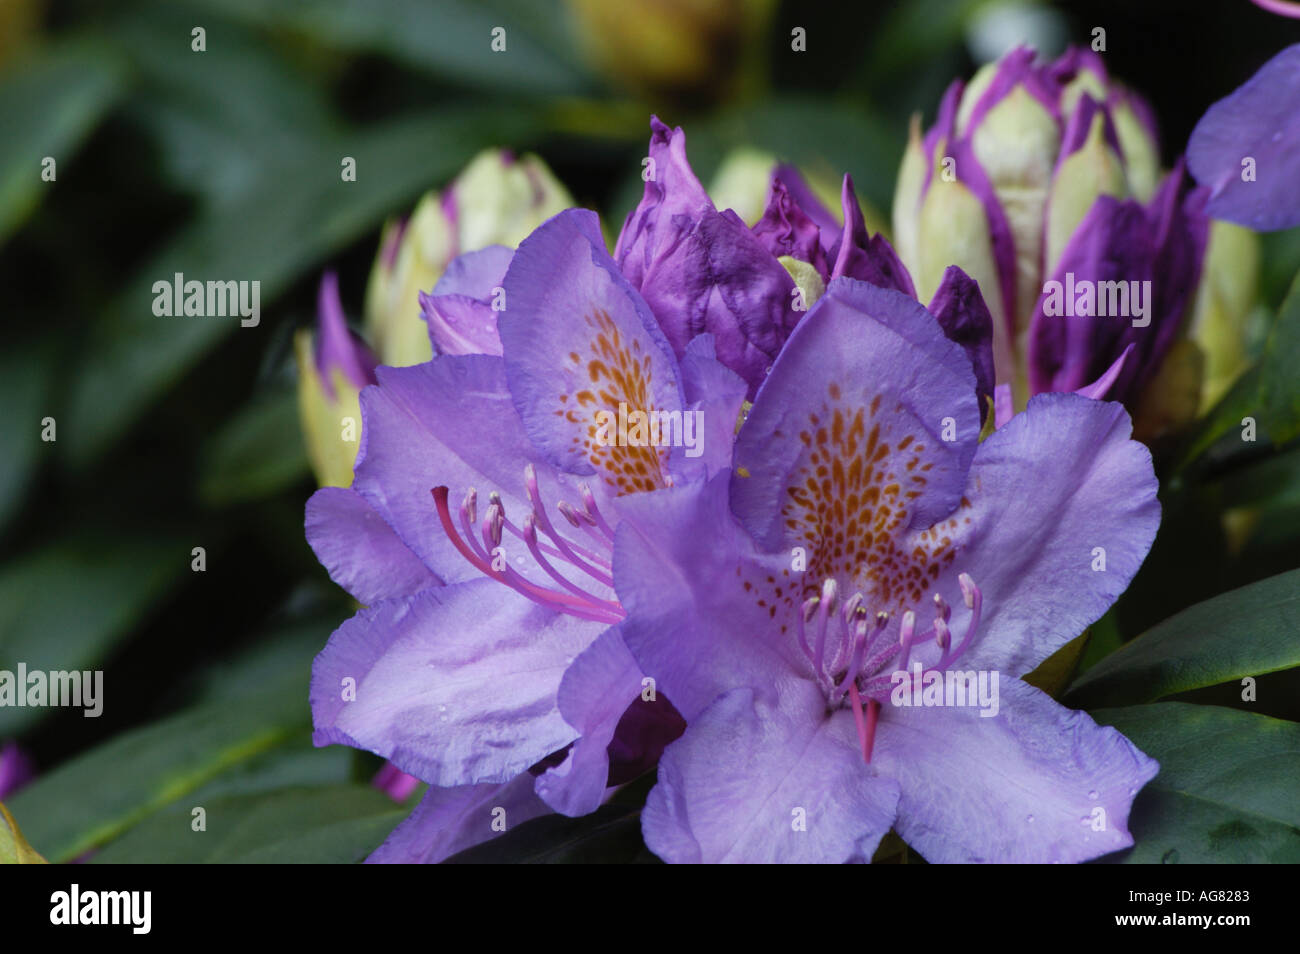 Rhododendron - Stock Image